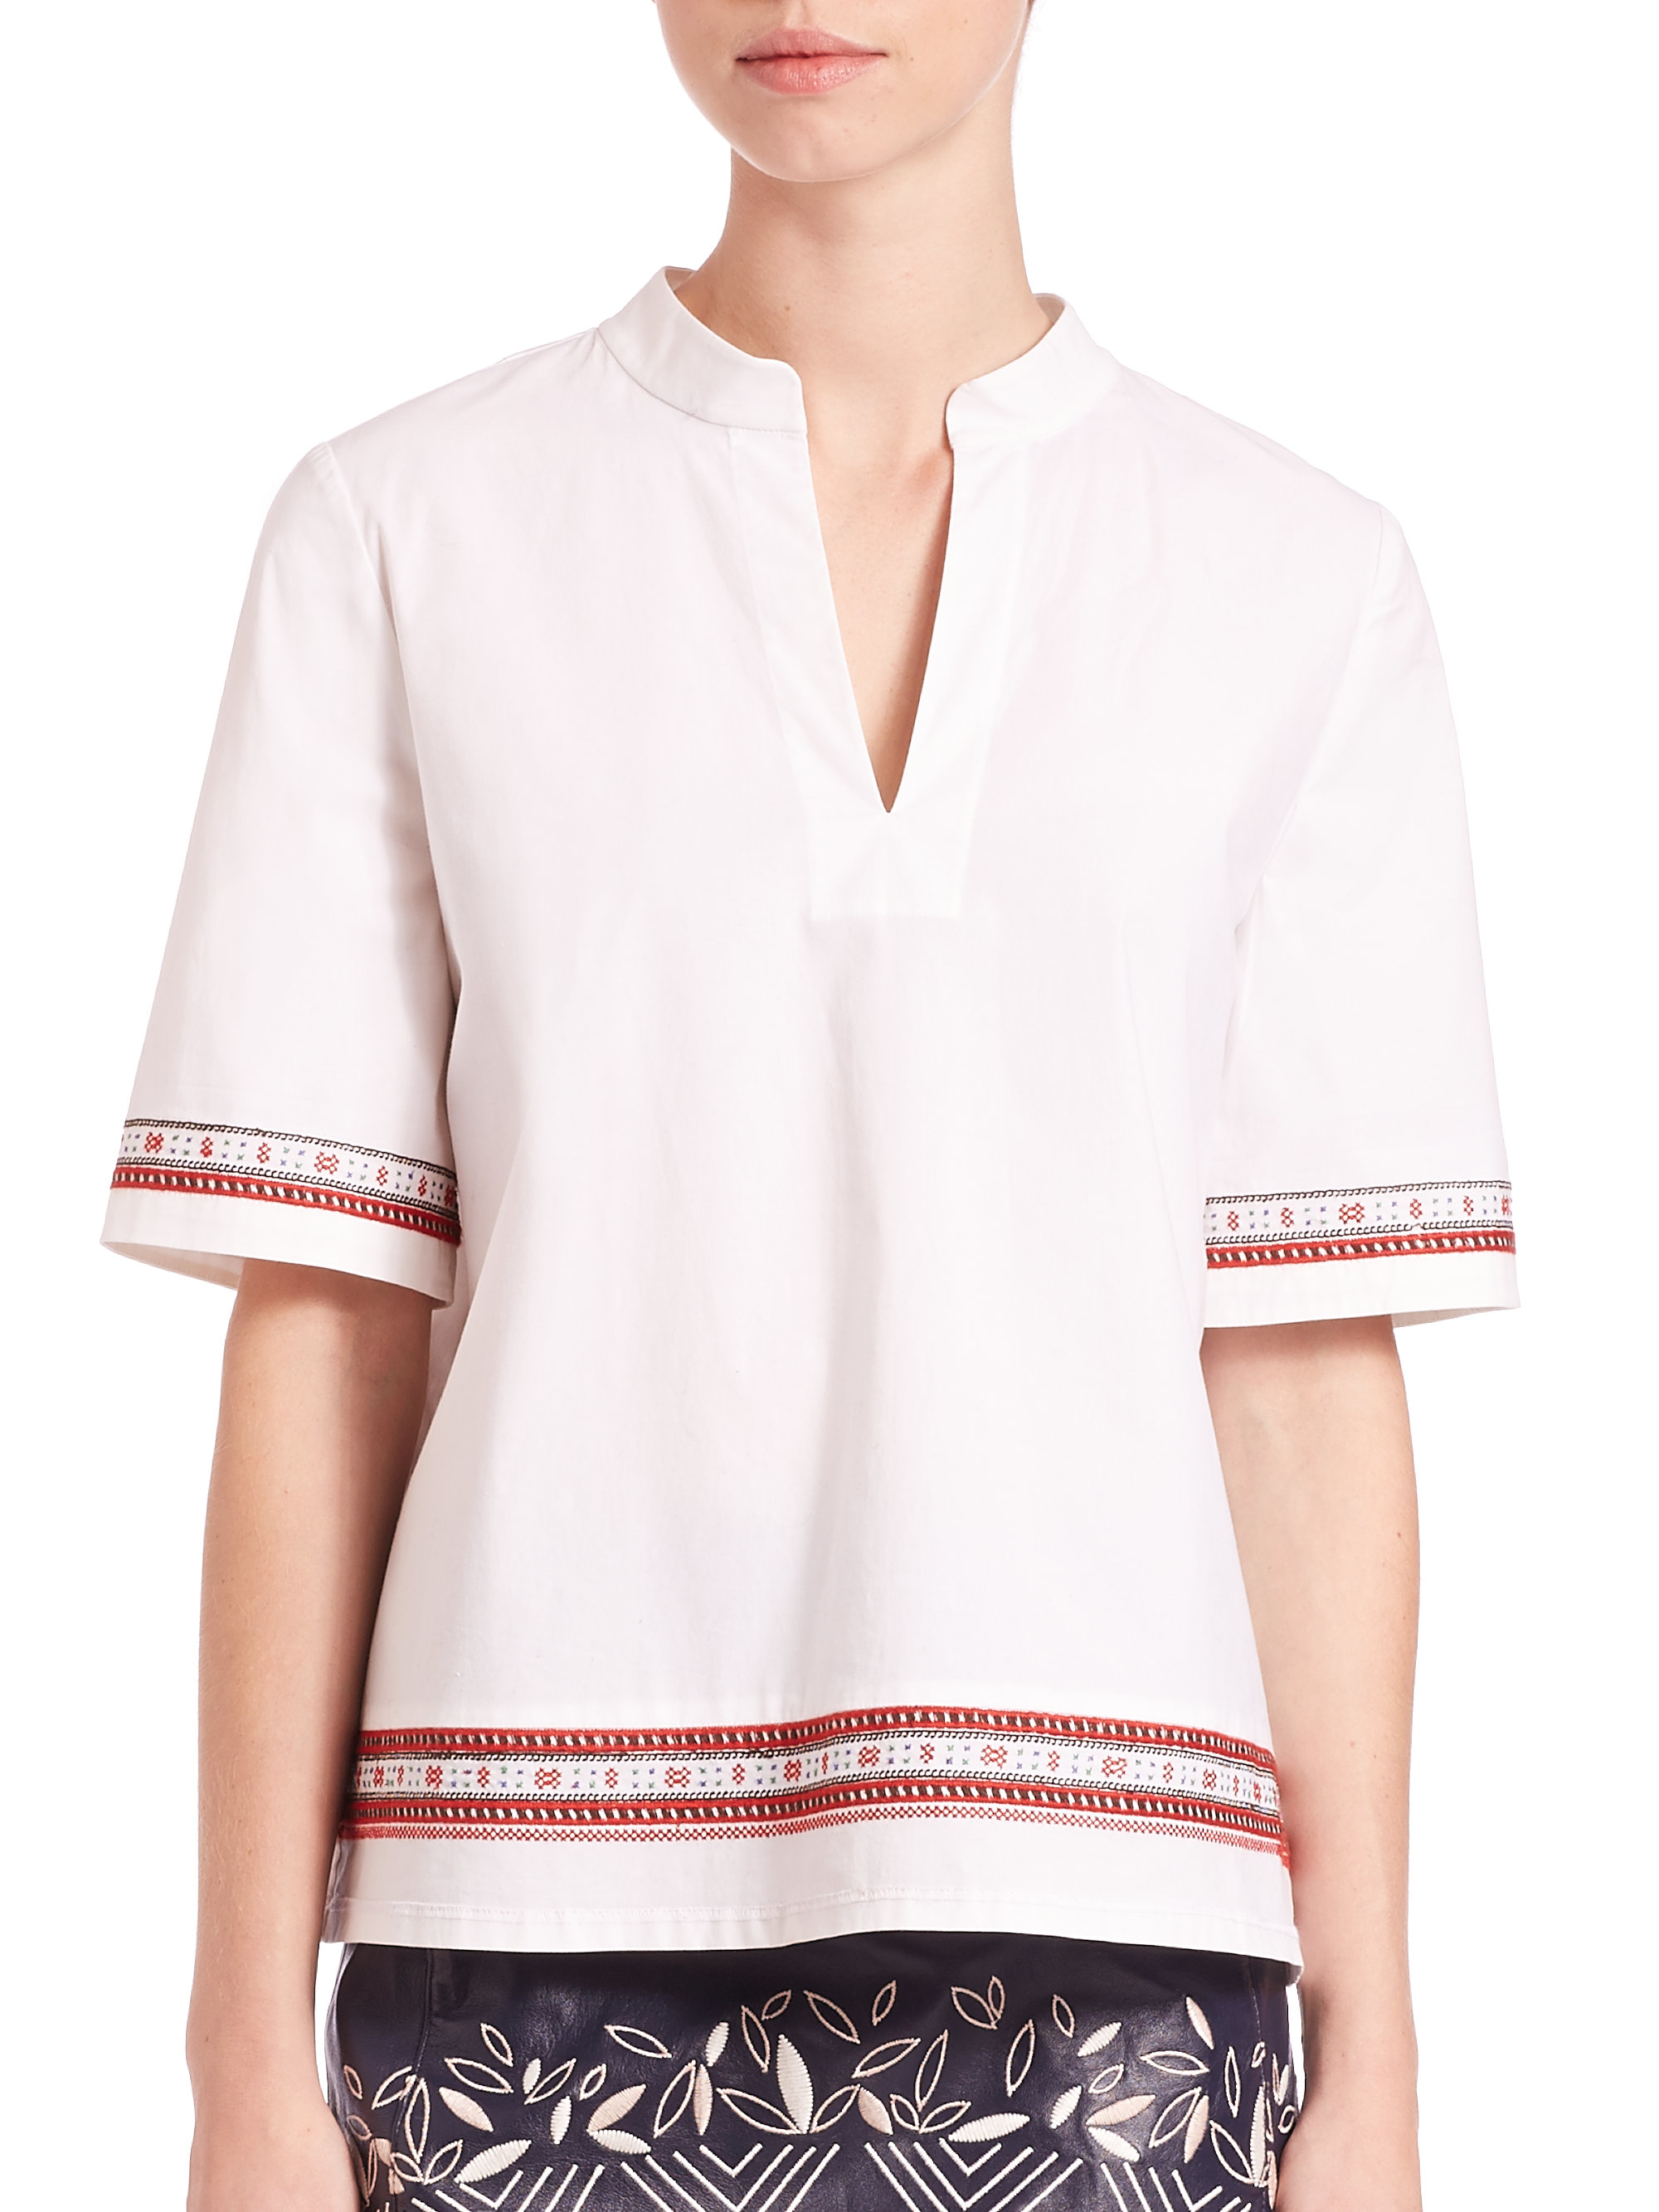 8abcbbef62e Lyst - Tory Burch Embroidered Cotton Tunic in White